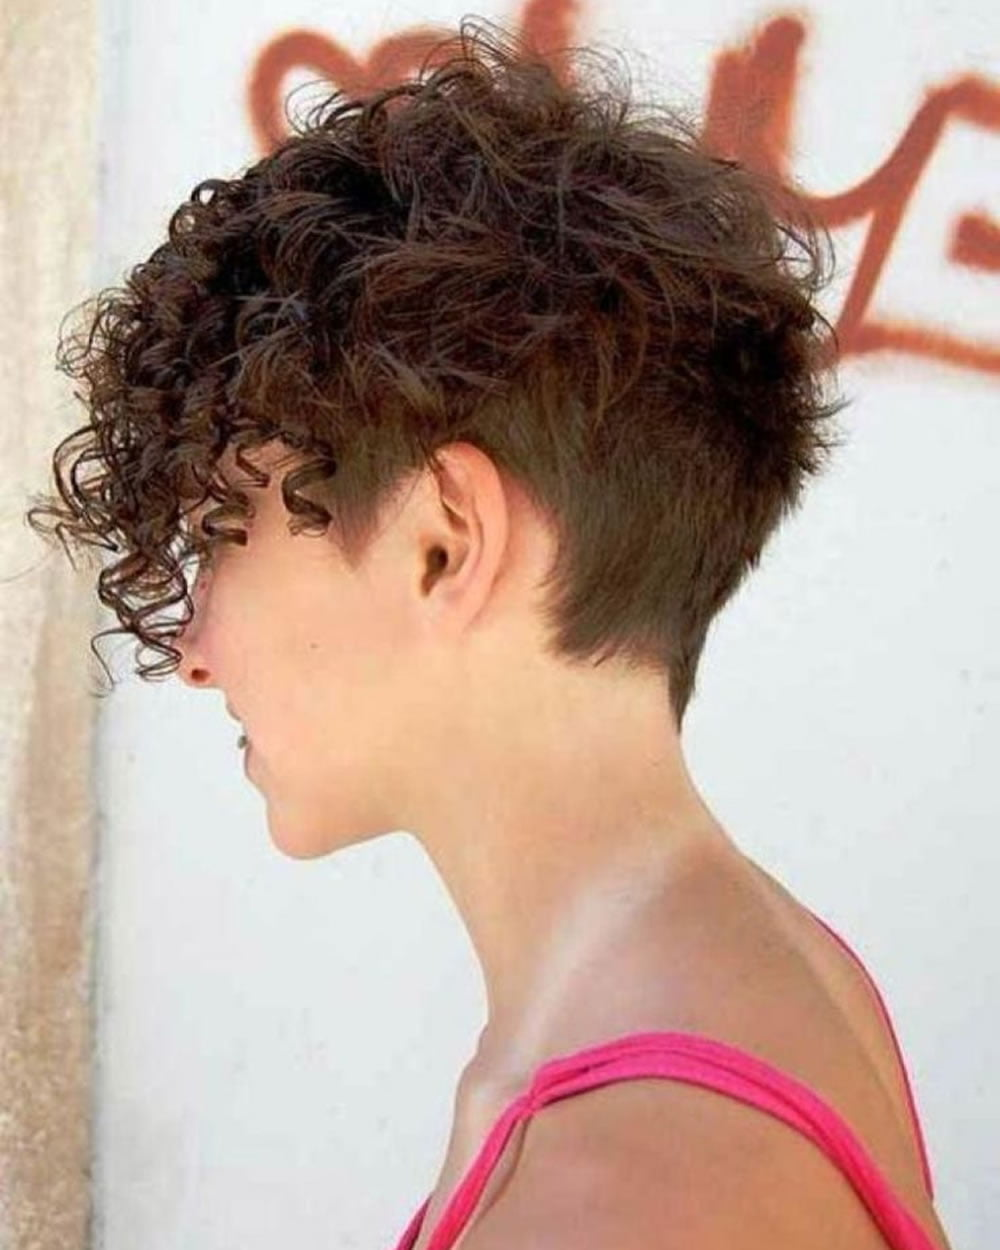 The Newest 2018 Undercut Hair Design For Girls Pixieshort Haircut